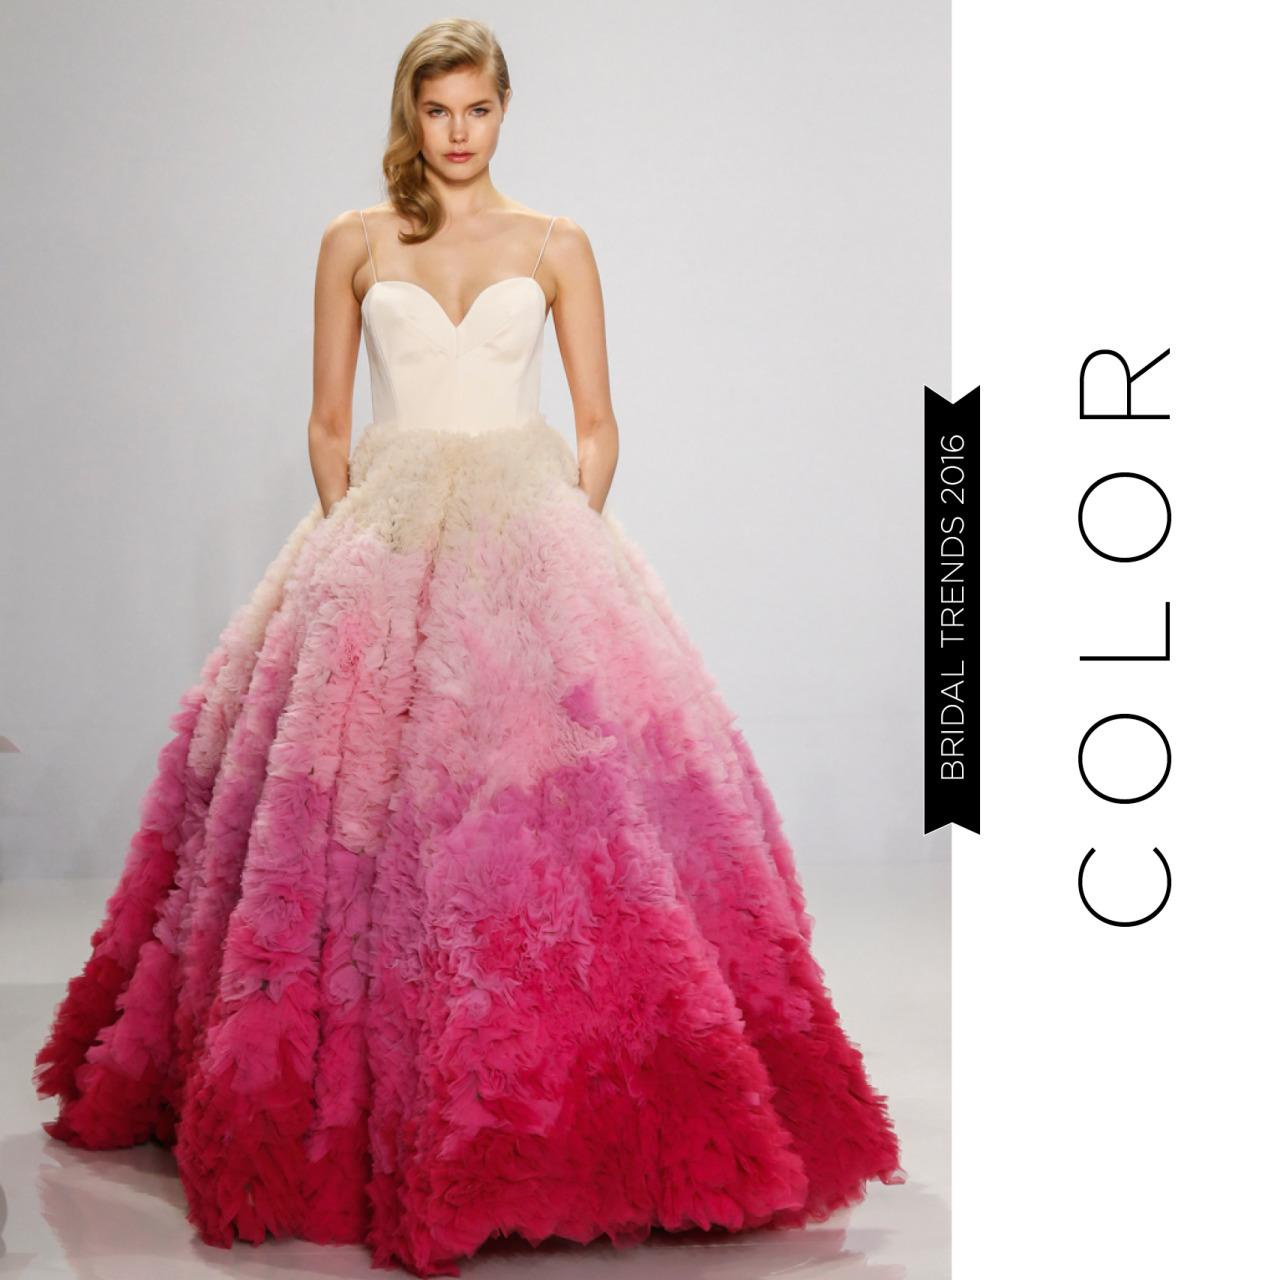 Wedding Gown For Sale: Every Gorgeous Wedding Gown For Sale This Spring